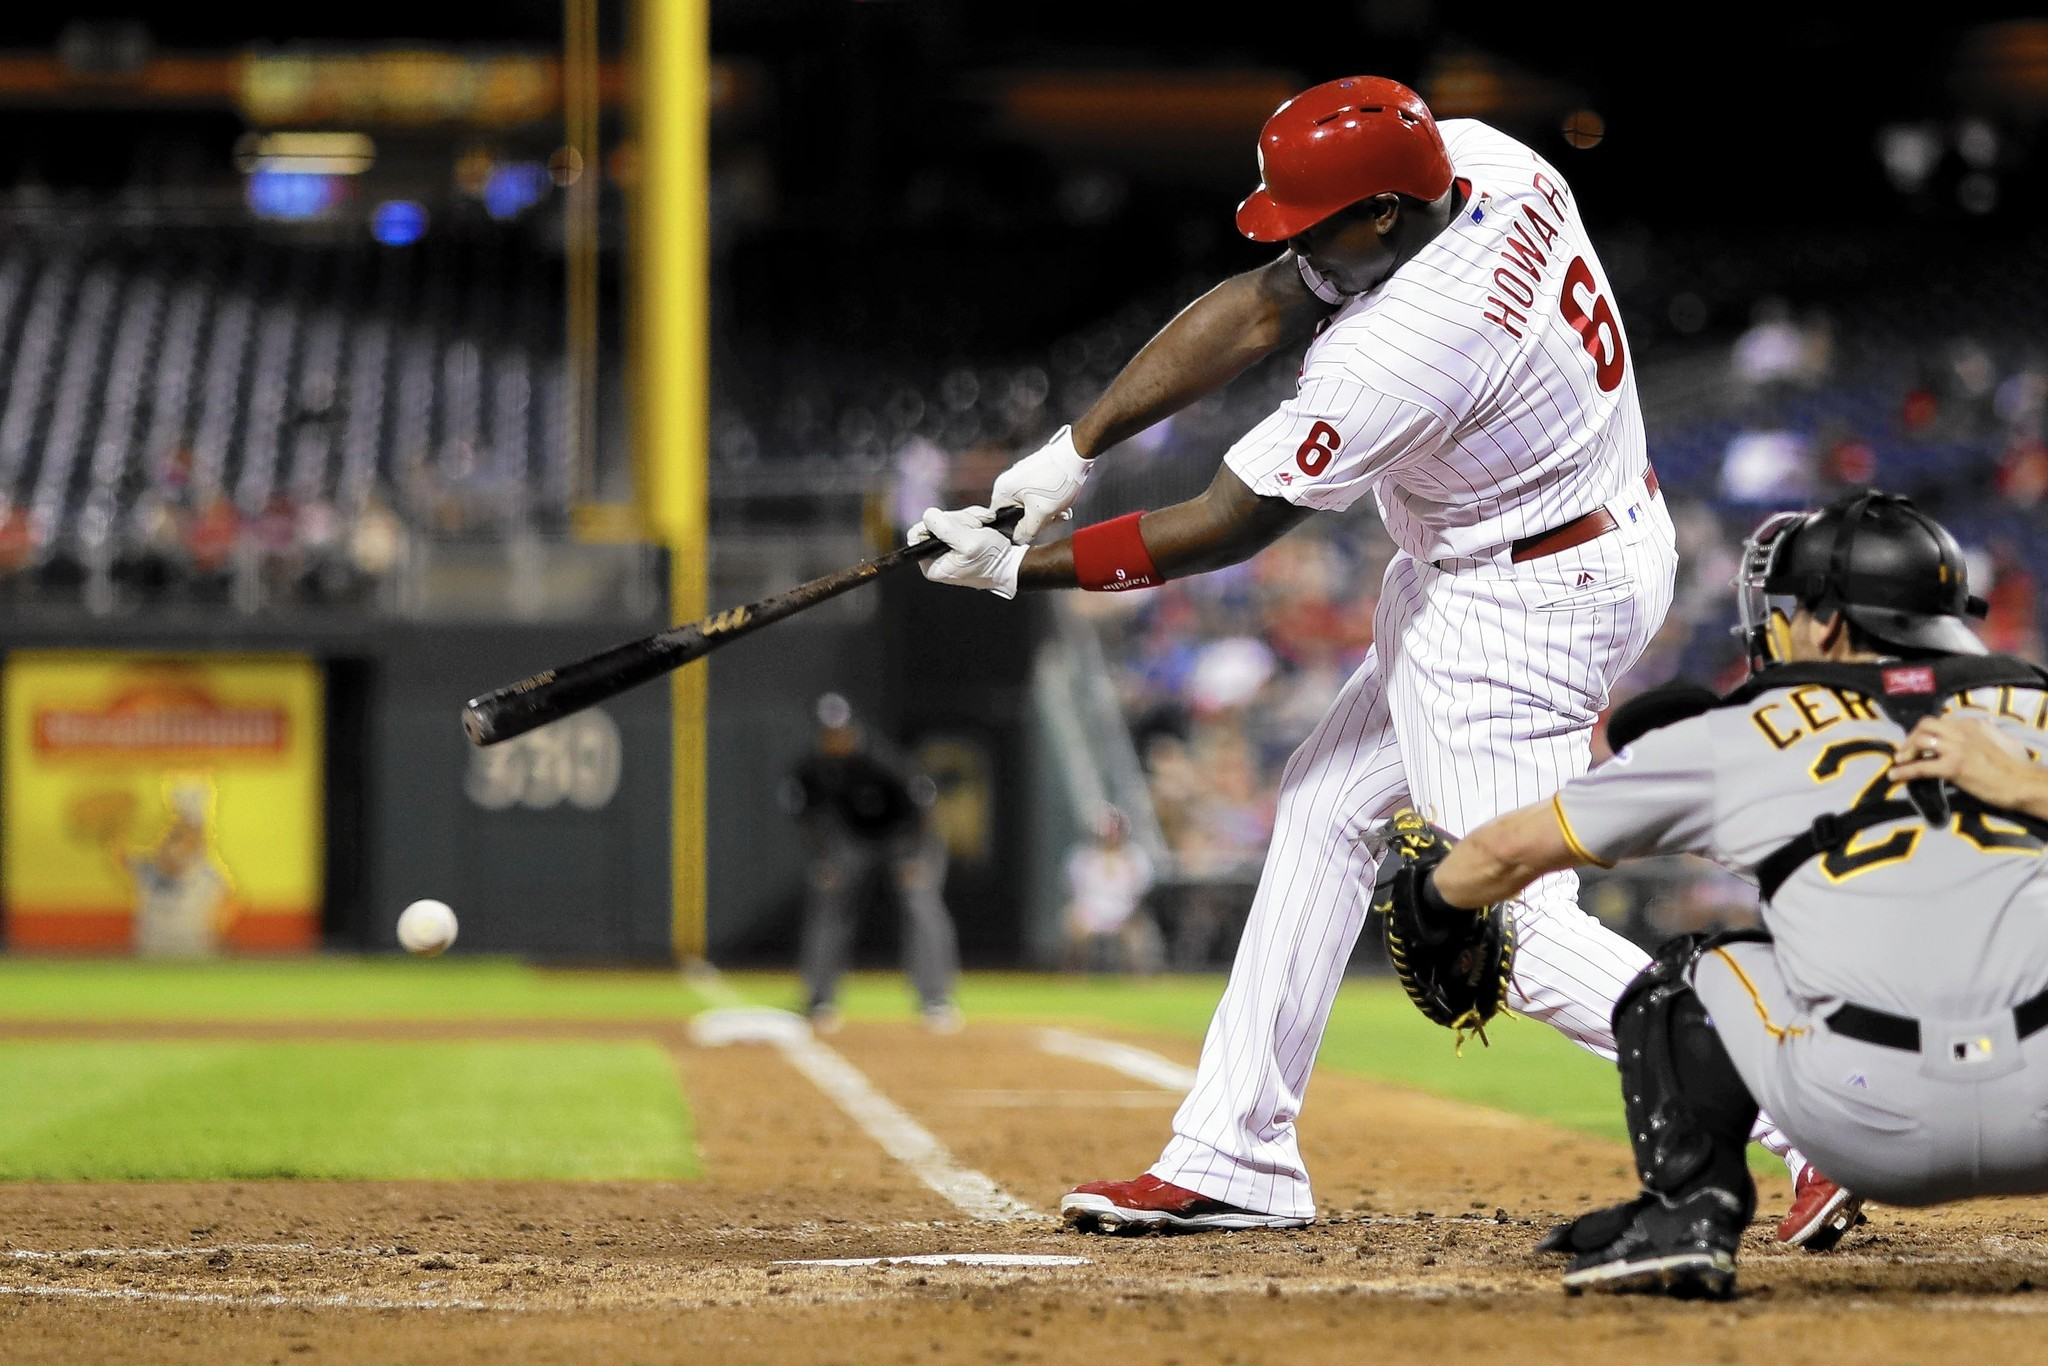 Mc-phillies-column-shift-0914-20160914